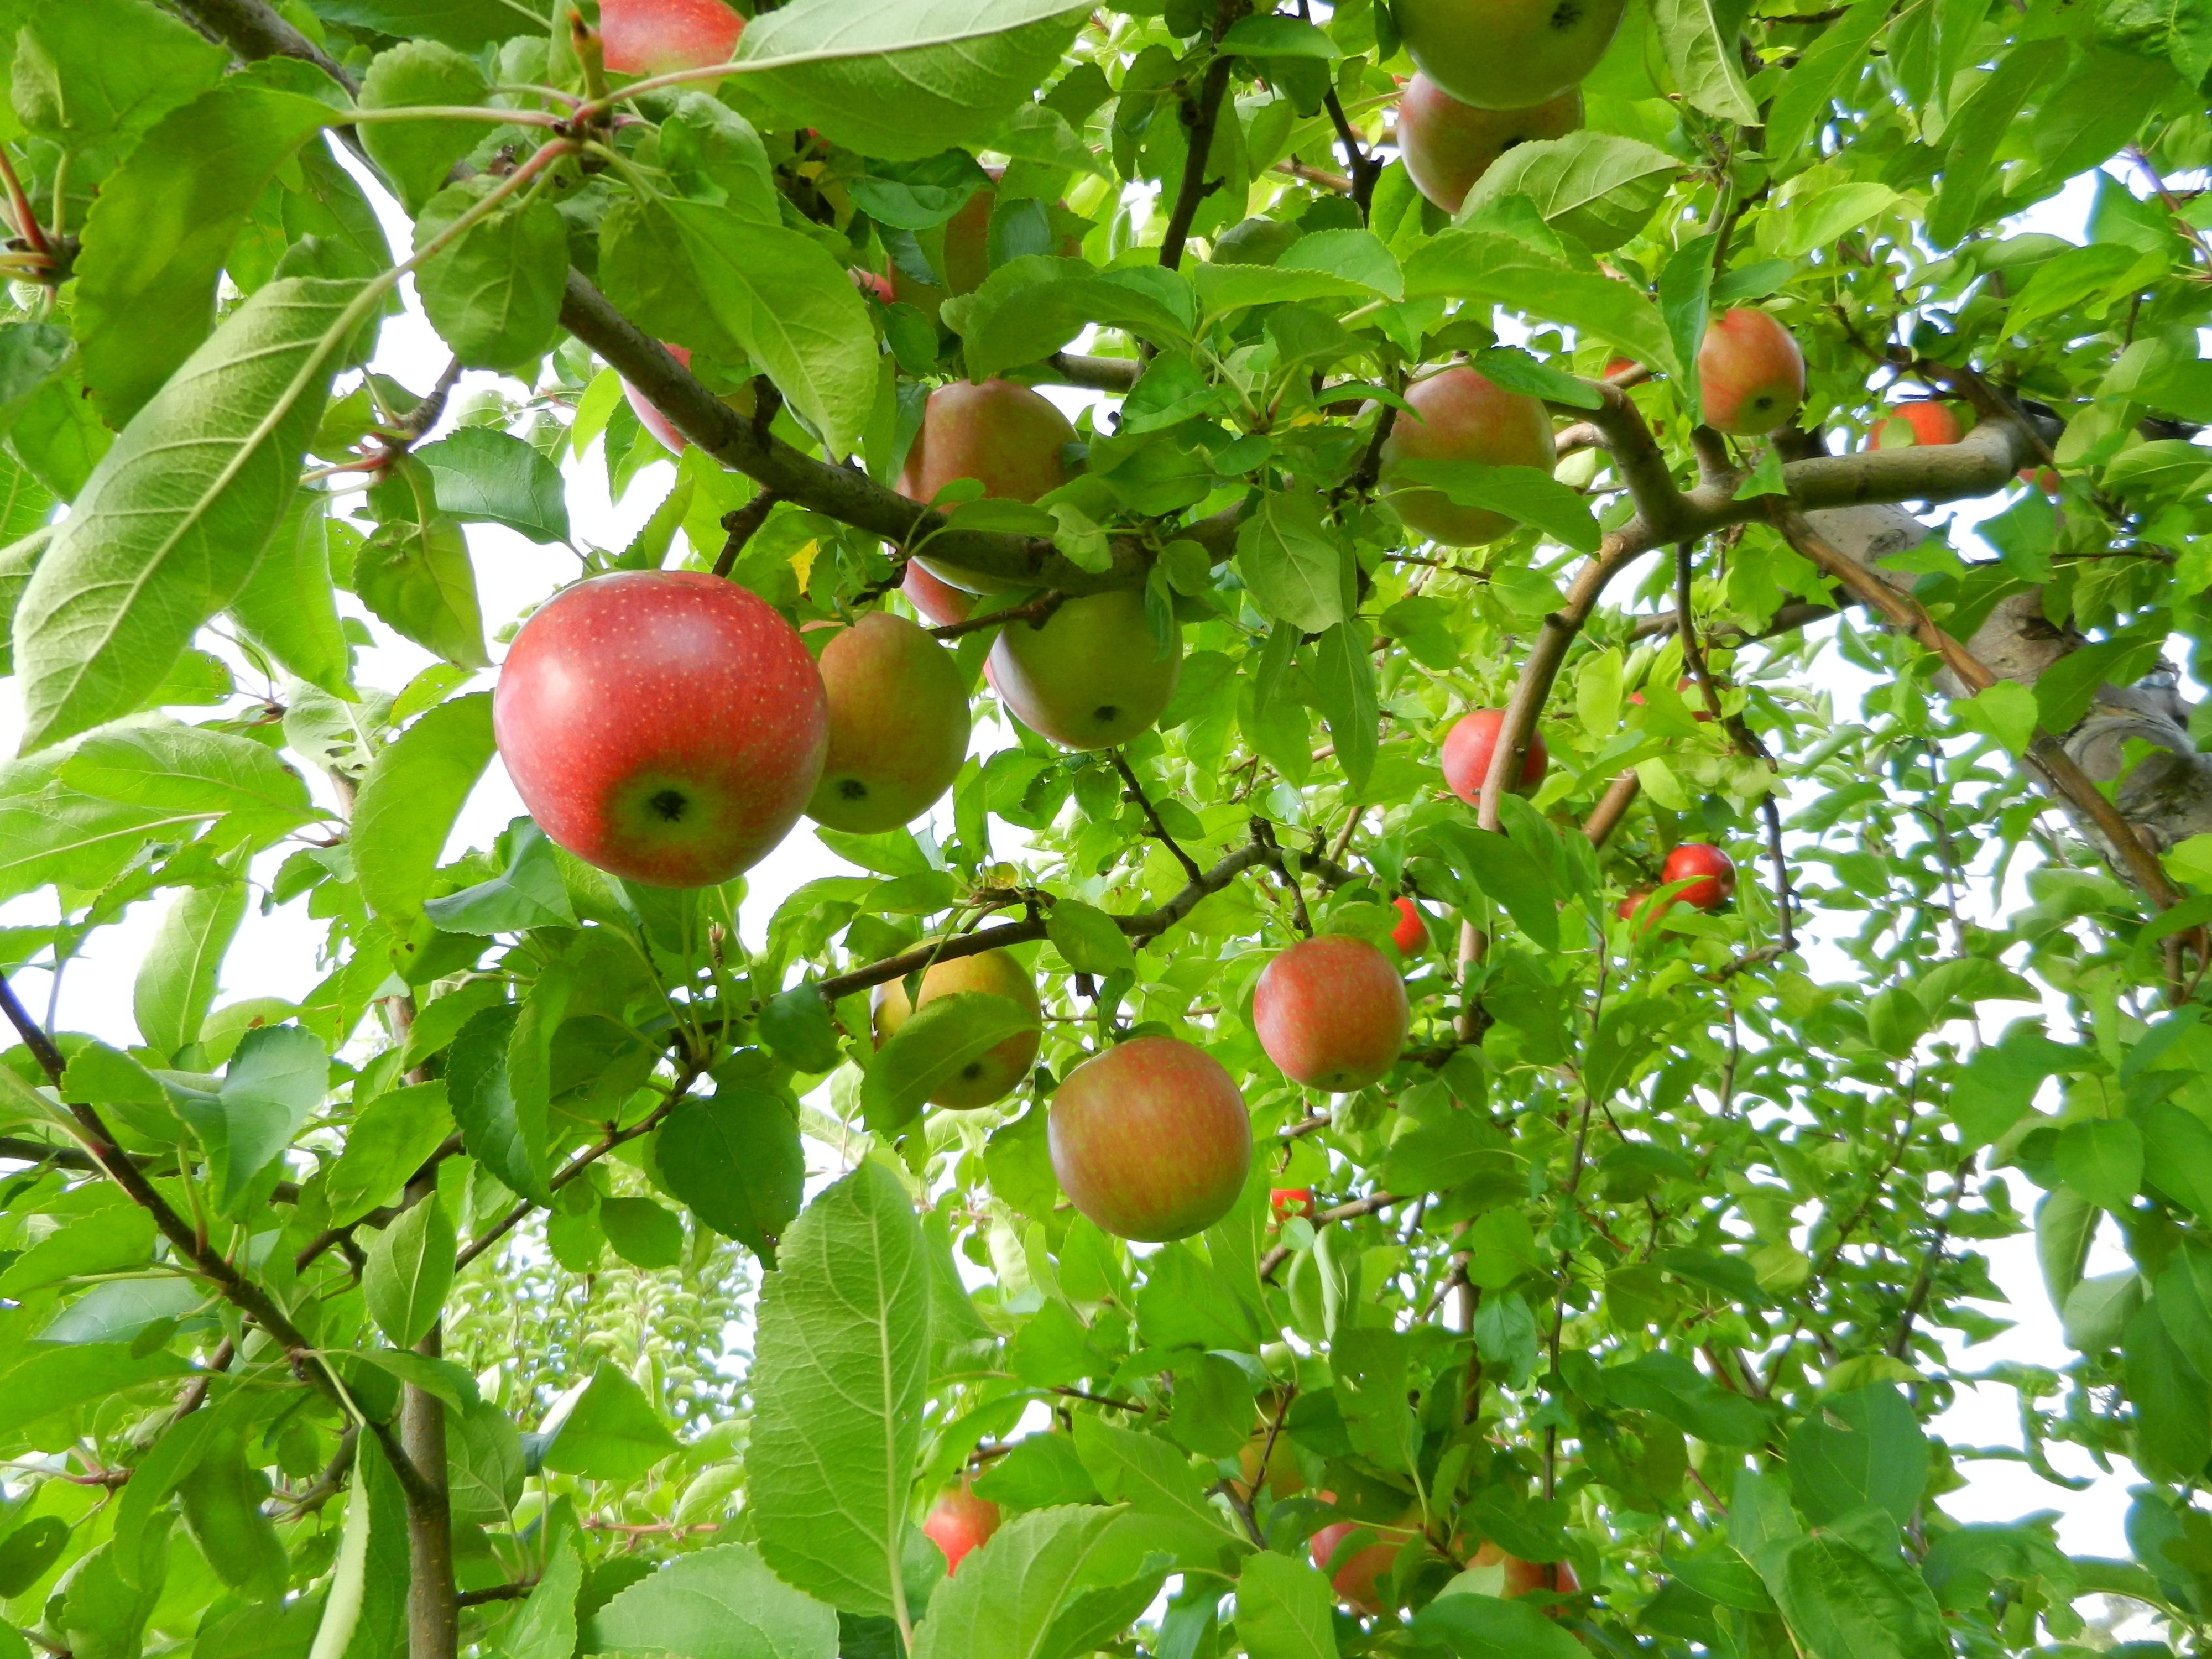 4000x3000 A guide to New England's finest apple picking spots - The Tufts Daily